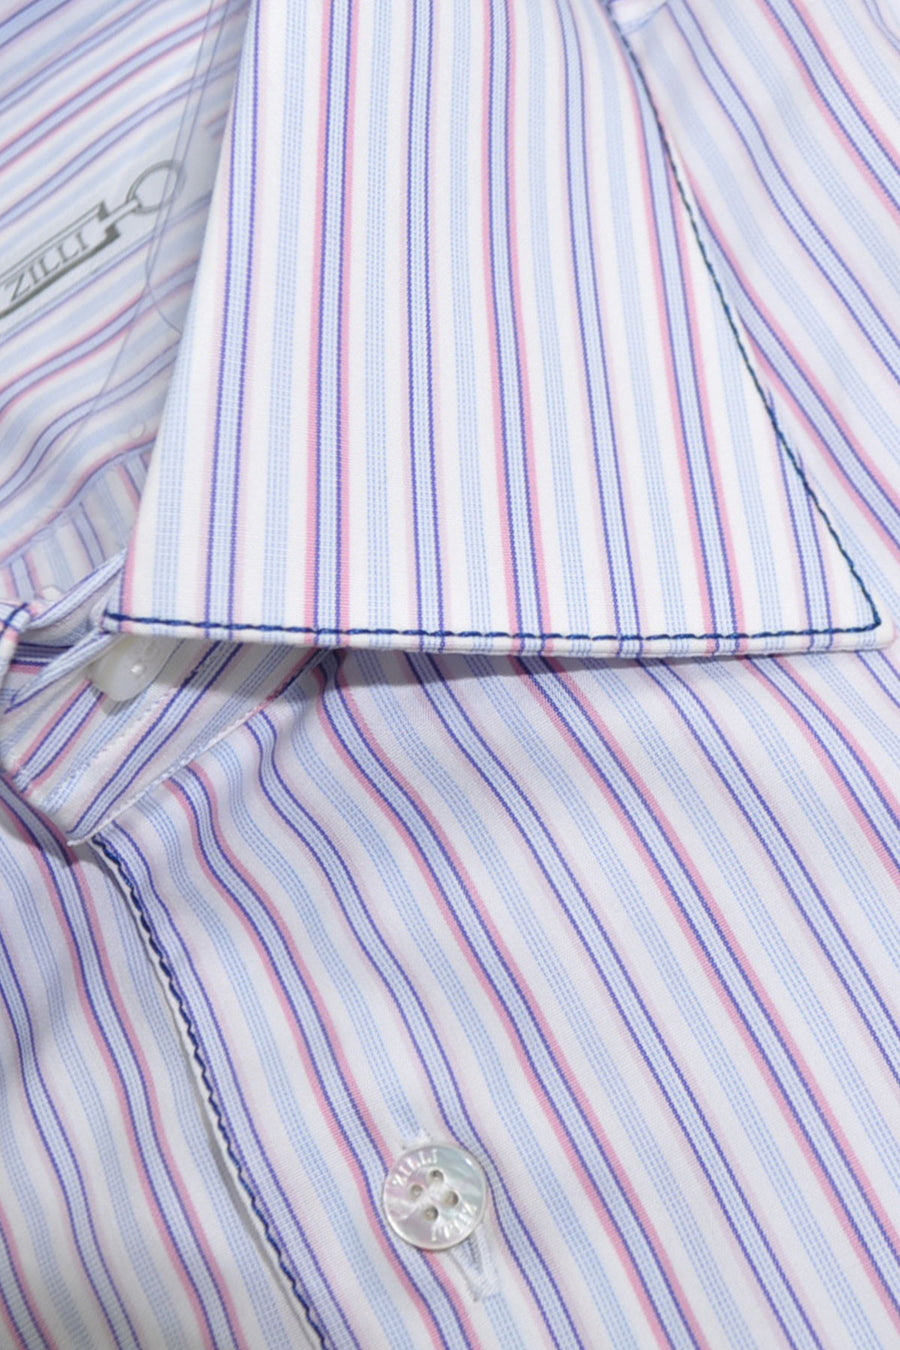 Zilli Shirt White Blue Pink Navy Stripes Egyptian Cotton